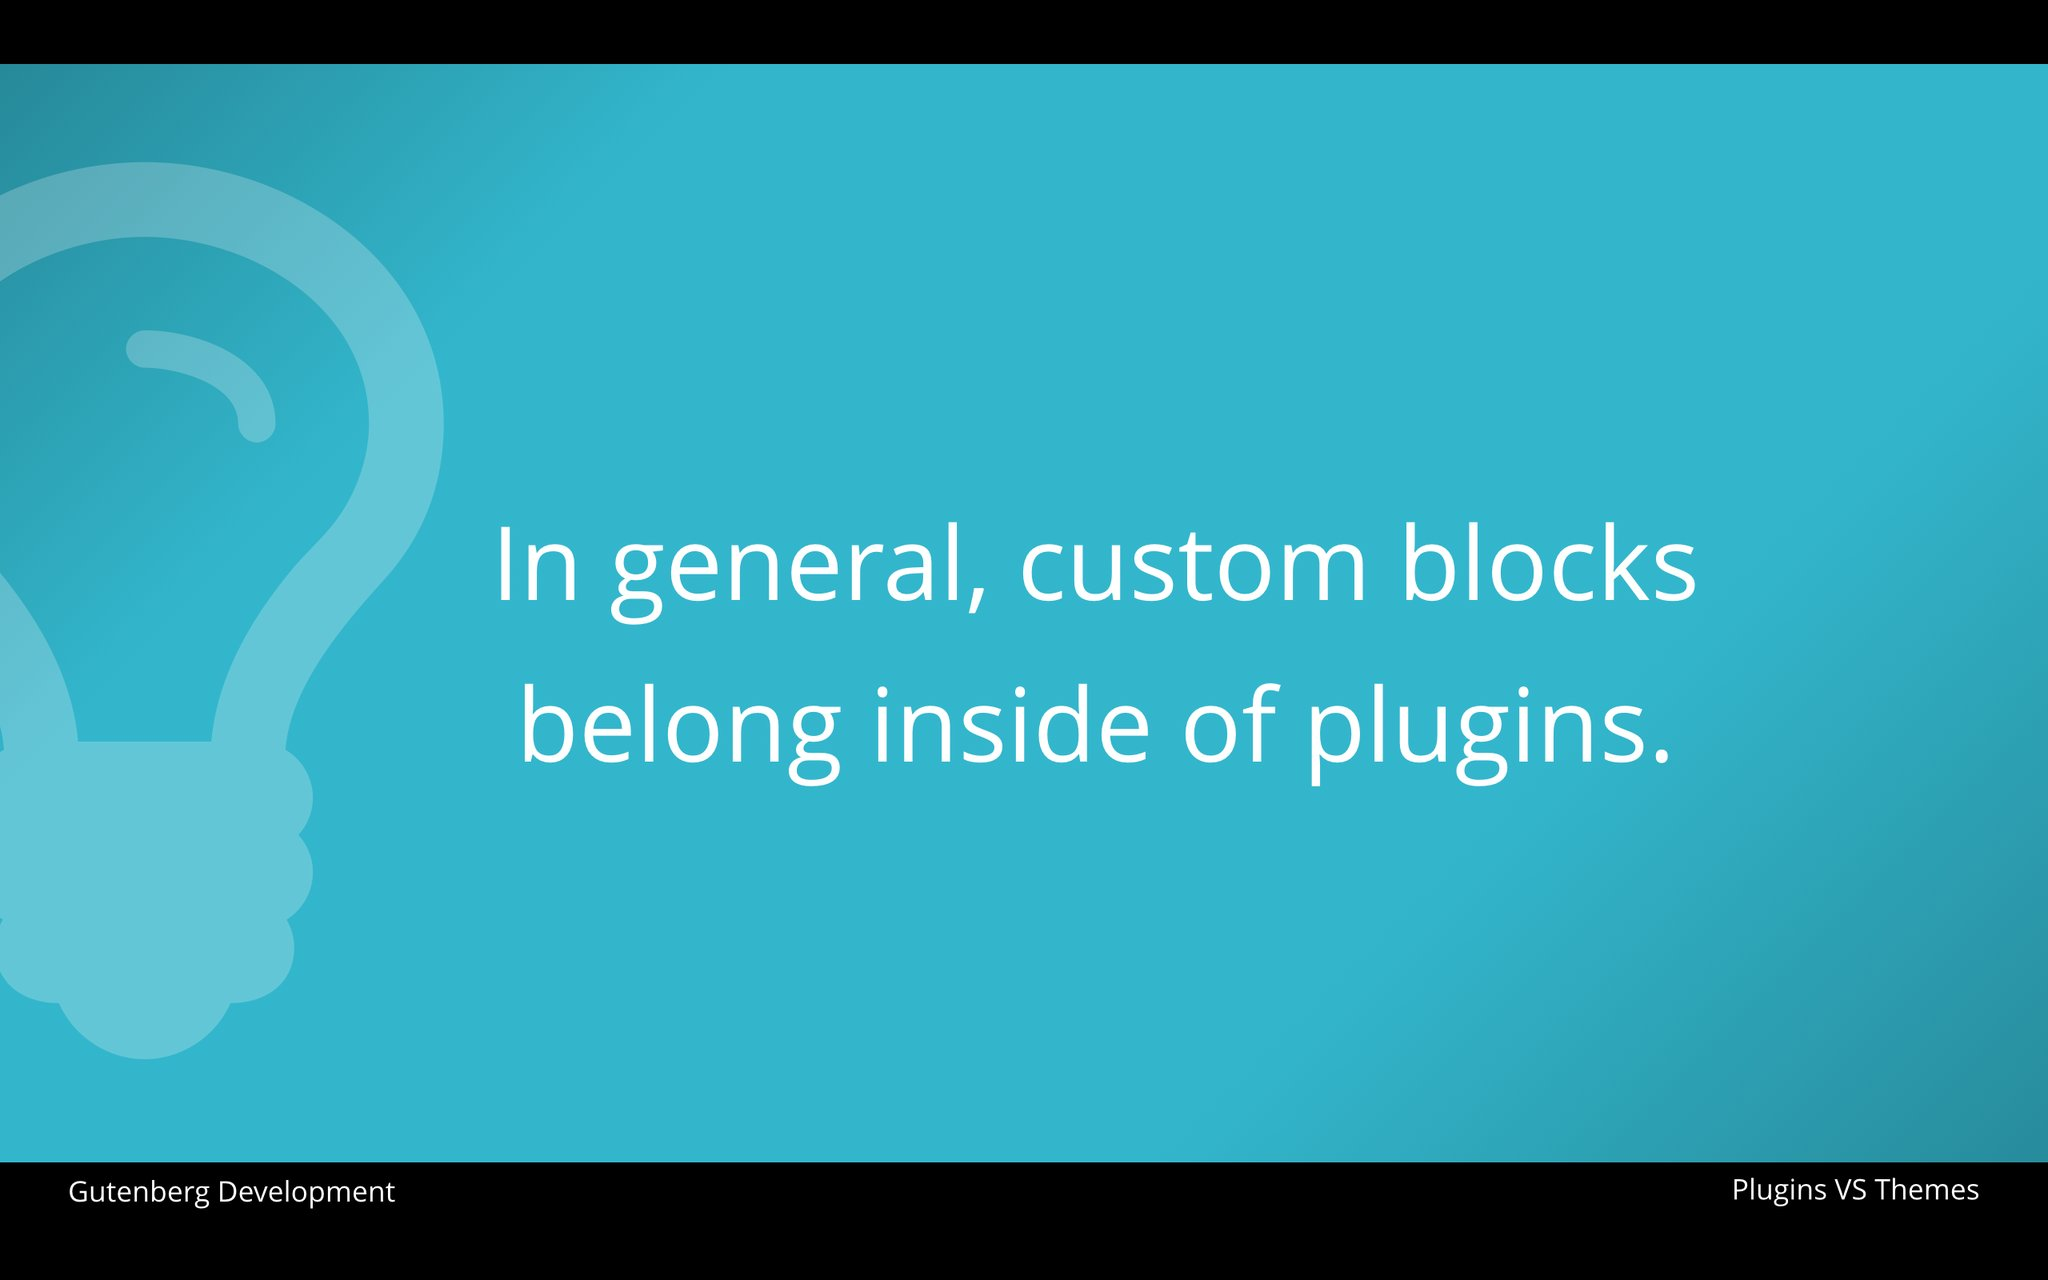 Text on Image: In general, custom blocks belong inside of plugins. Zac Gordon